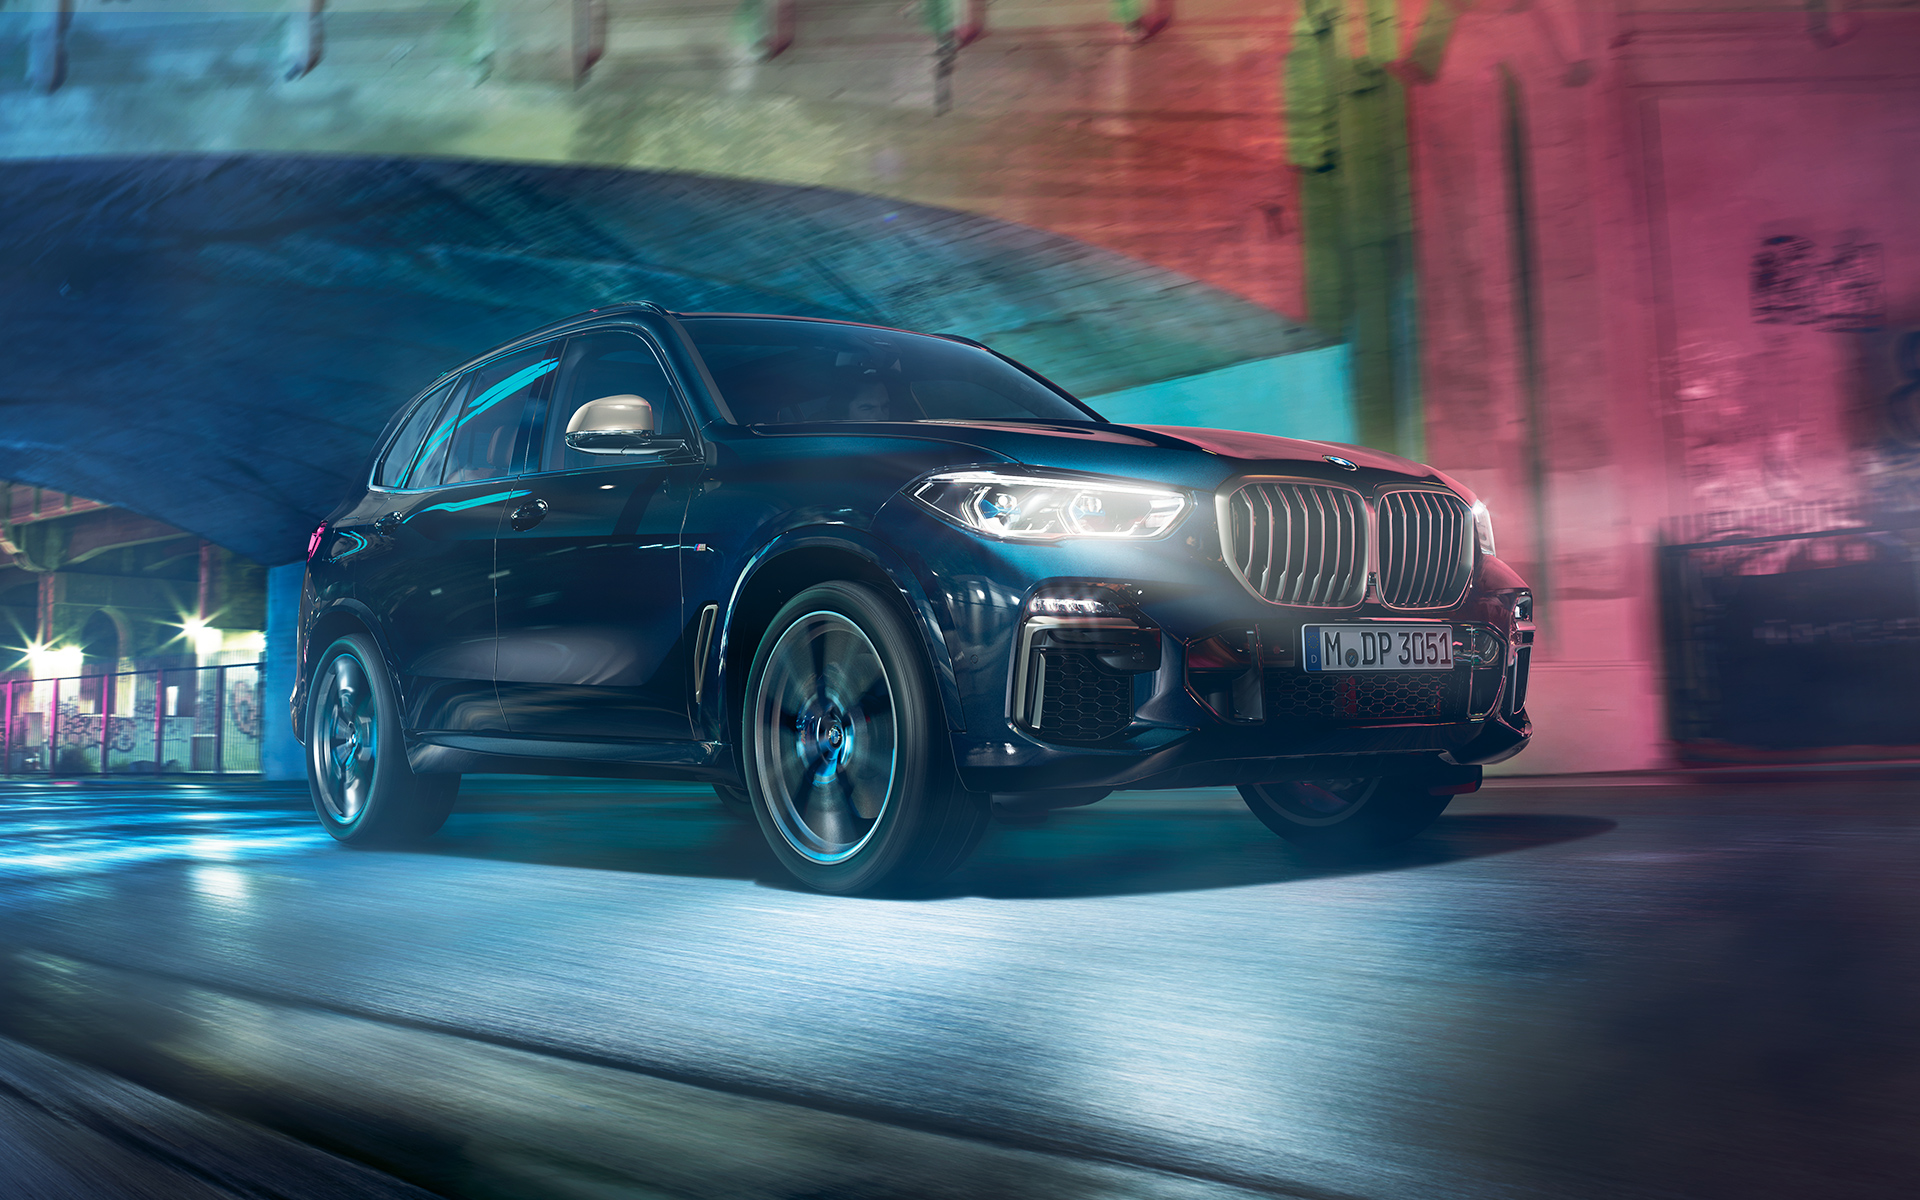 BMW G05 X5 wallpapers 1